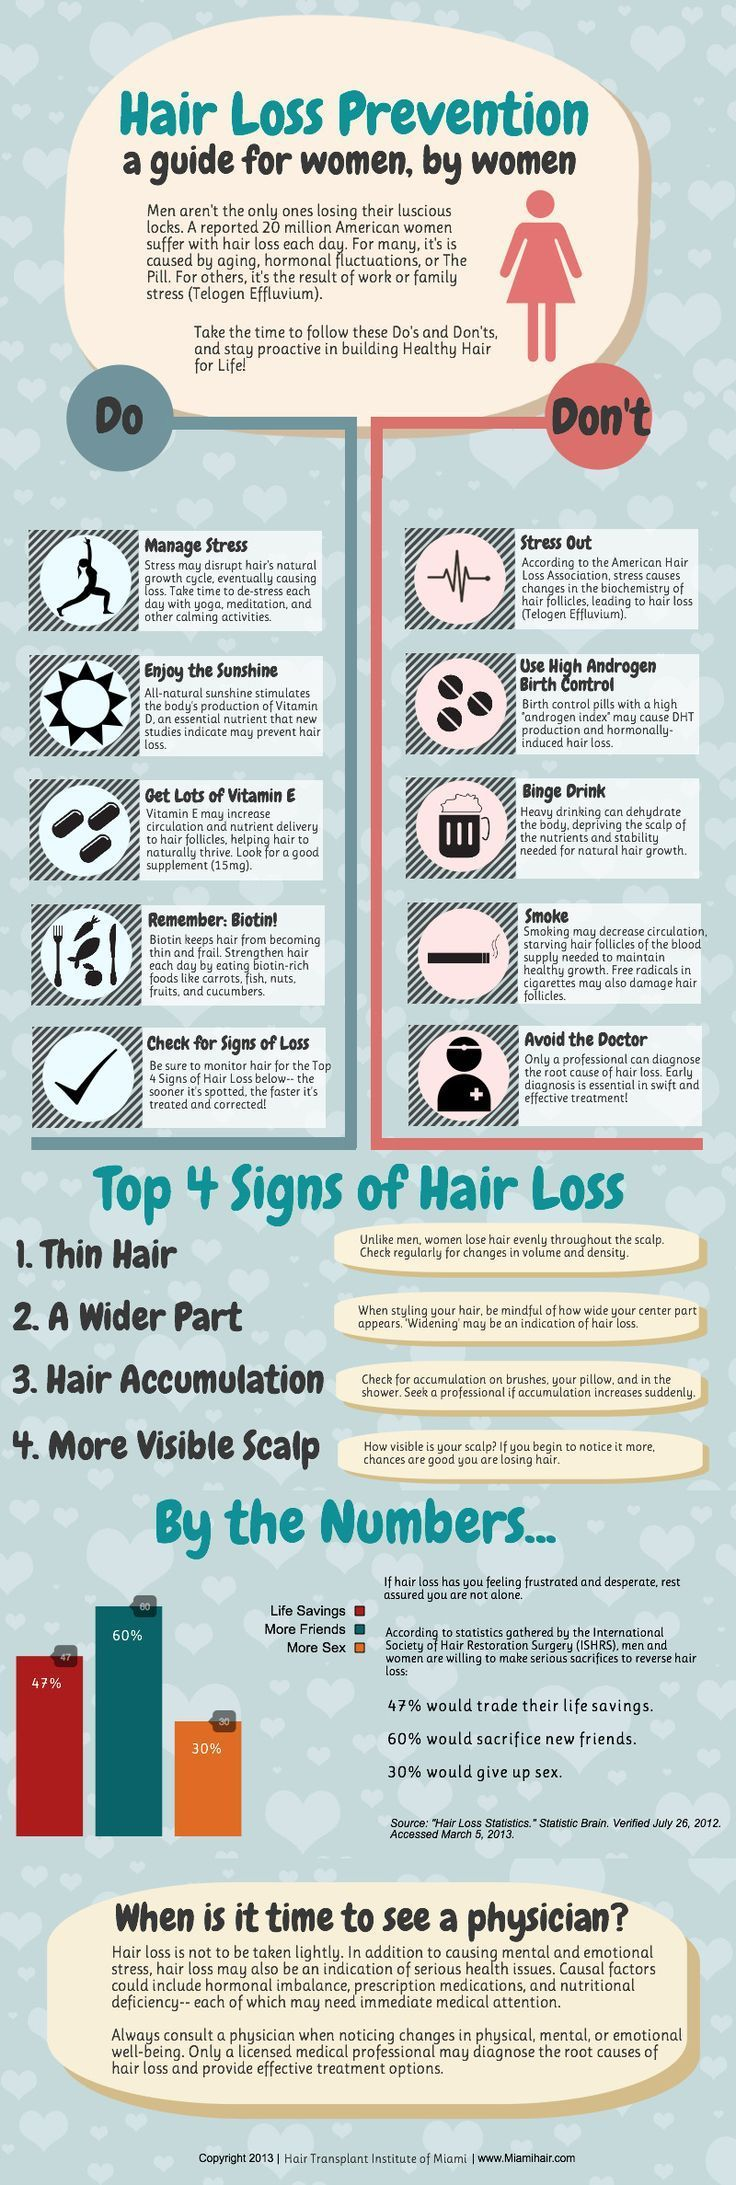 How often do men get haircuts solutions to prevent hair loss thinning hair stop baldness and